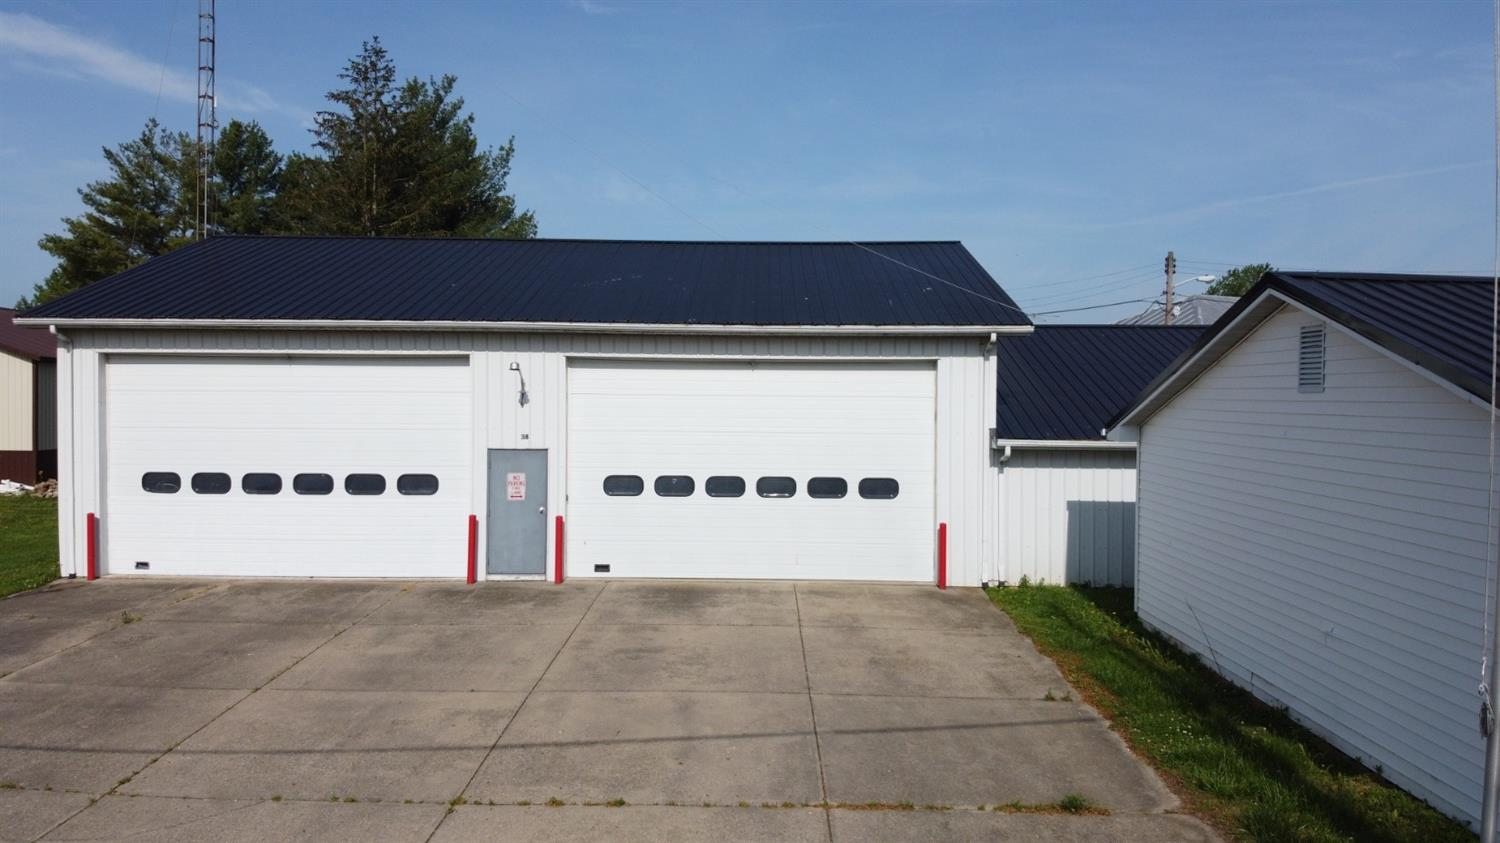 40 S marion St Holton, IN